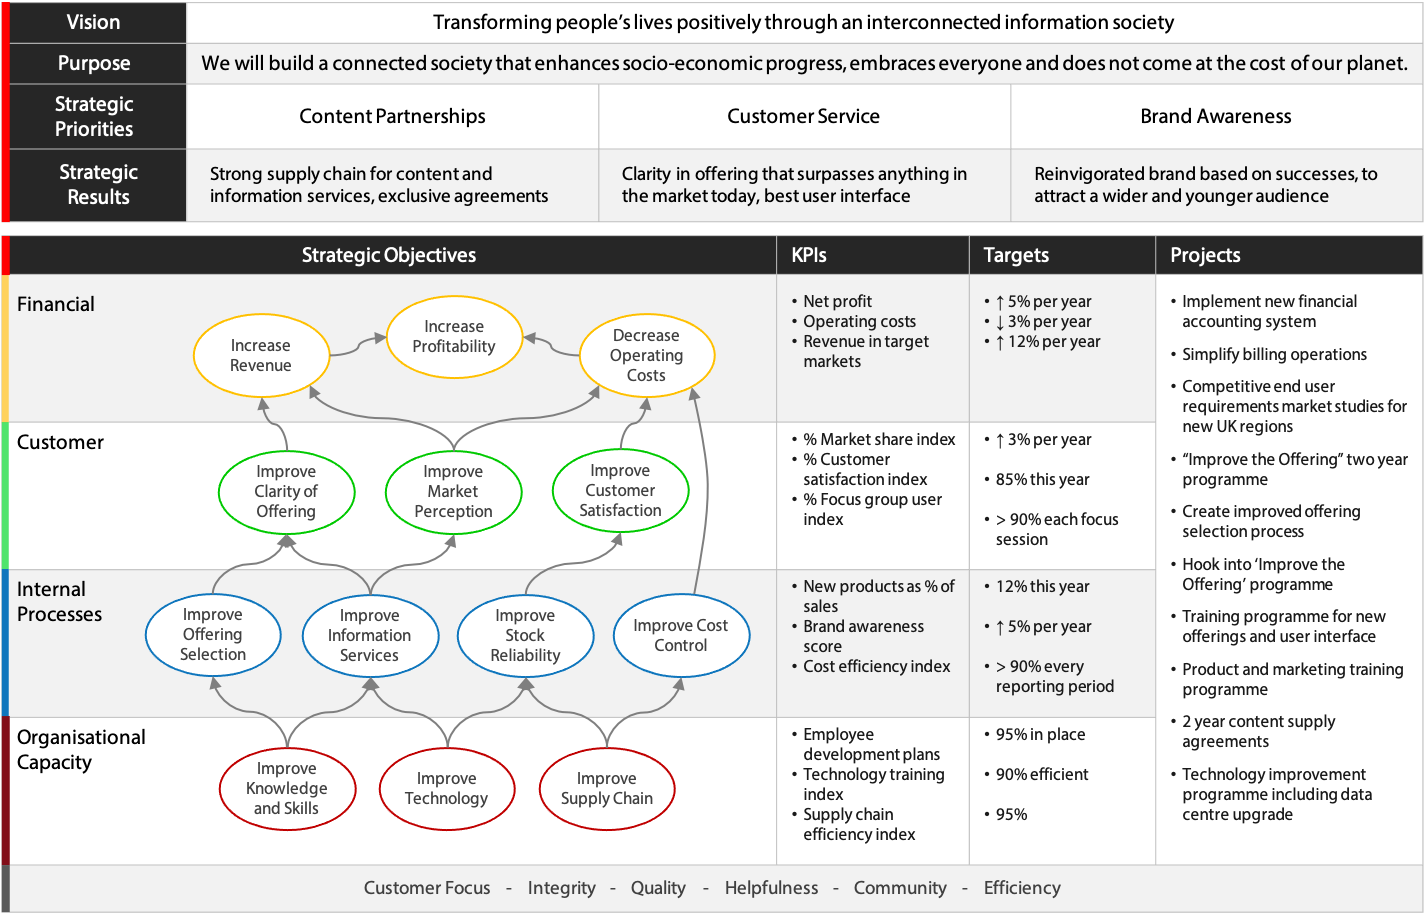 Integrated Strategy Map from Intrafocus